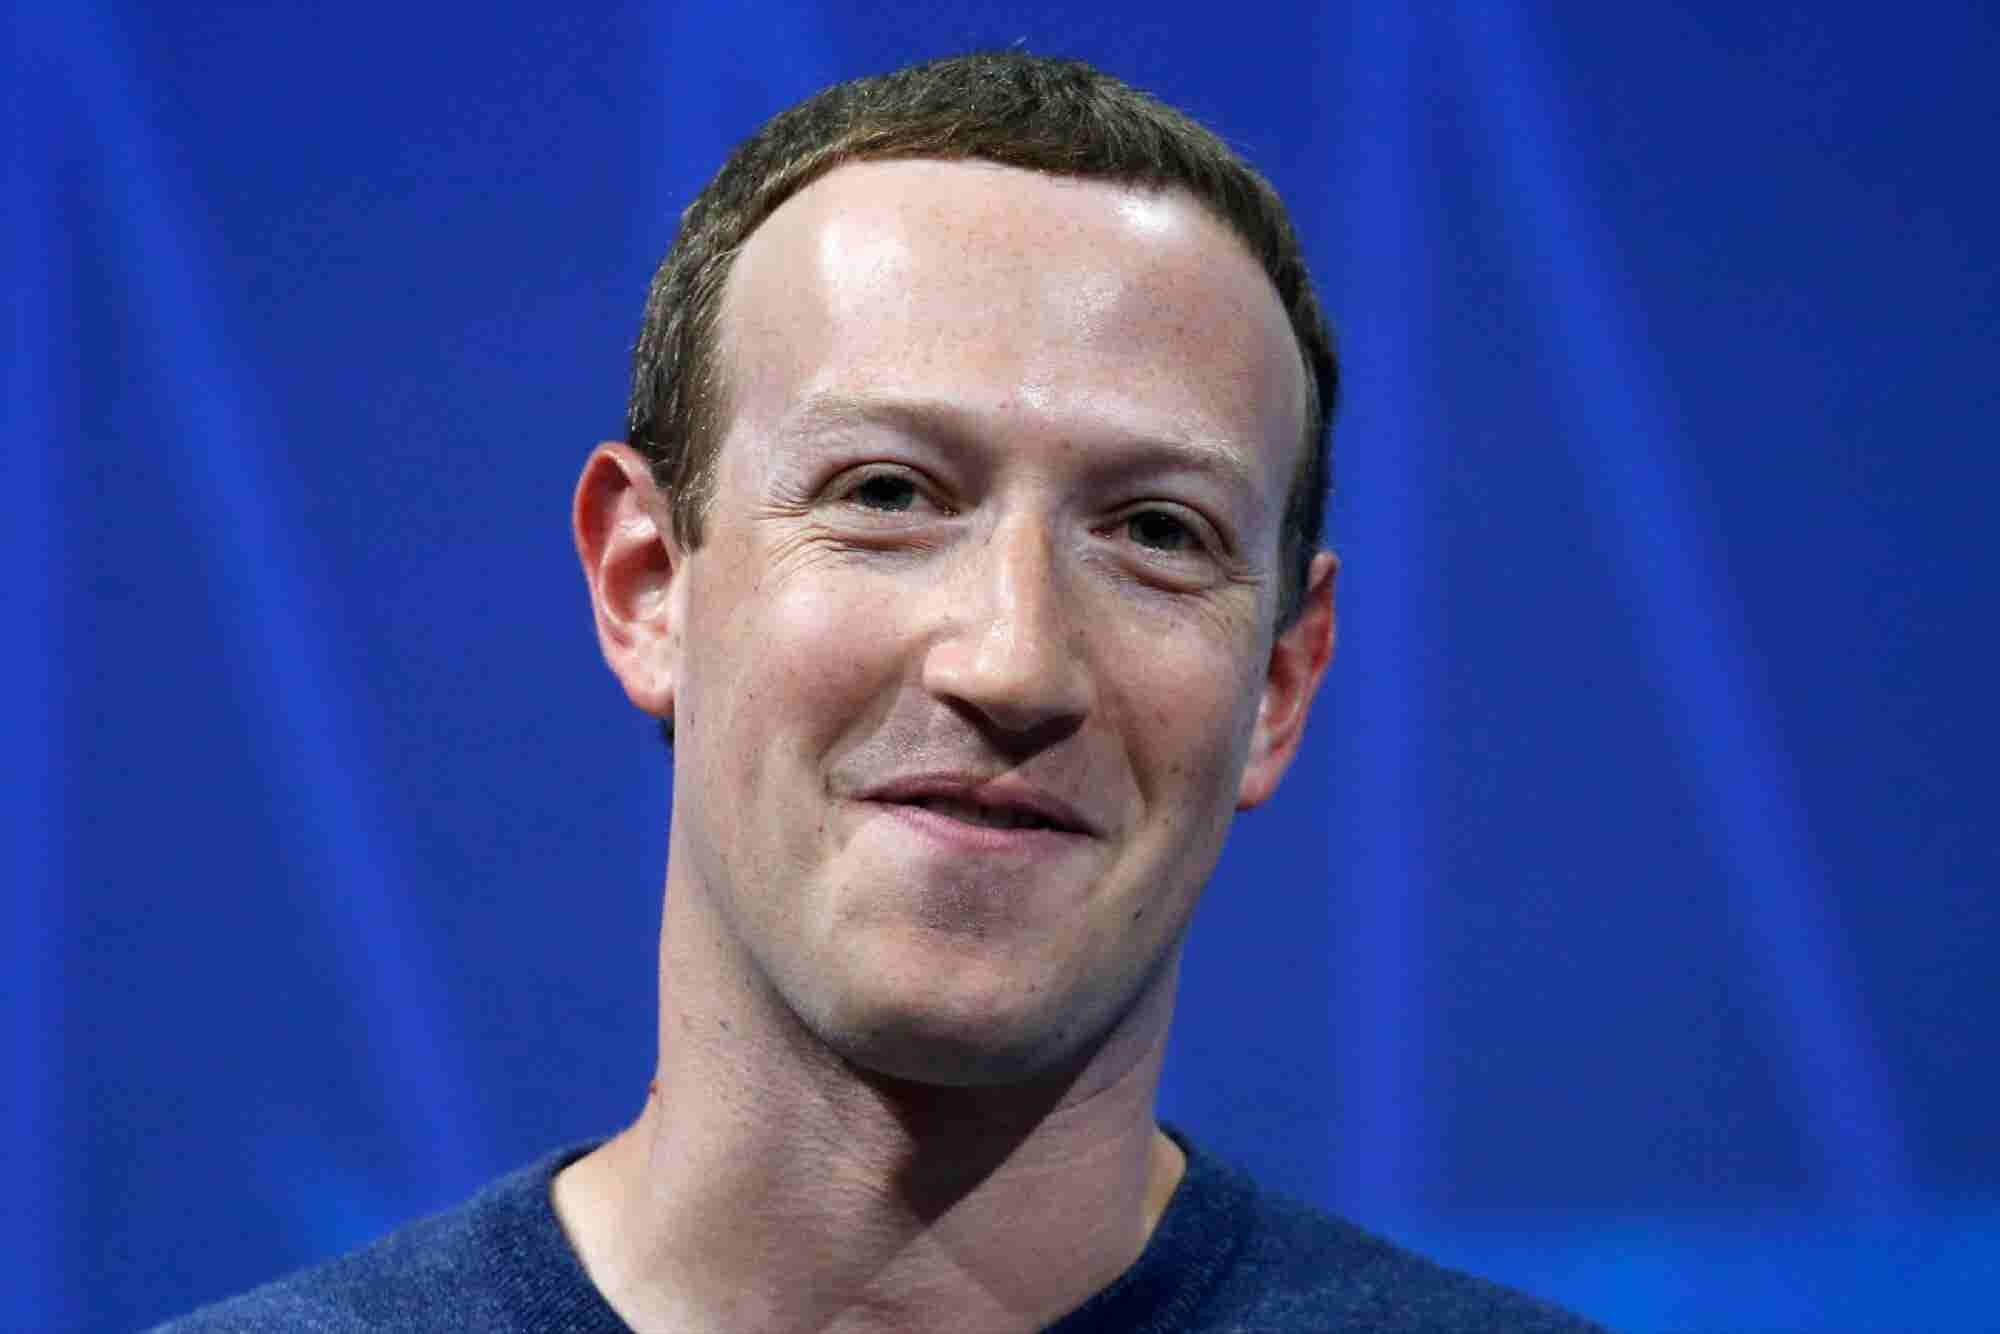 Mark Zuckerberg Soon to Replace Warren Buffett as World's Third-Richest Person